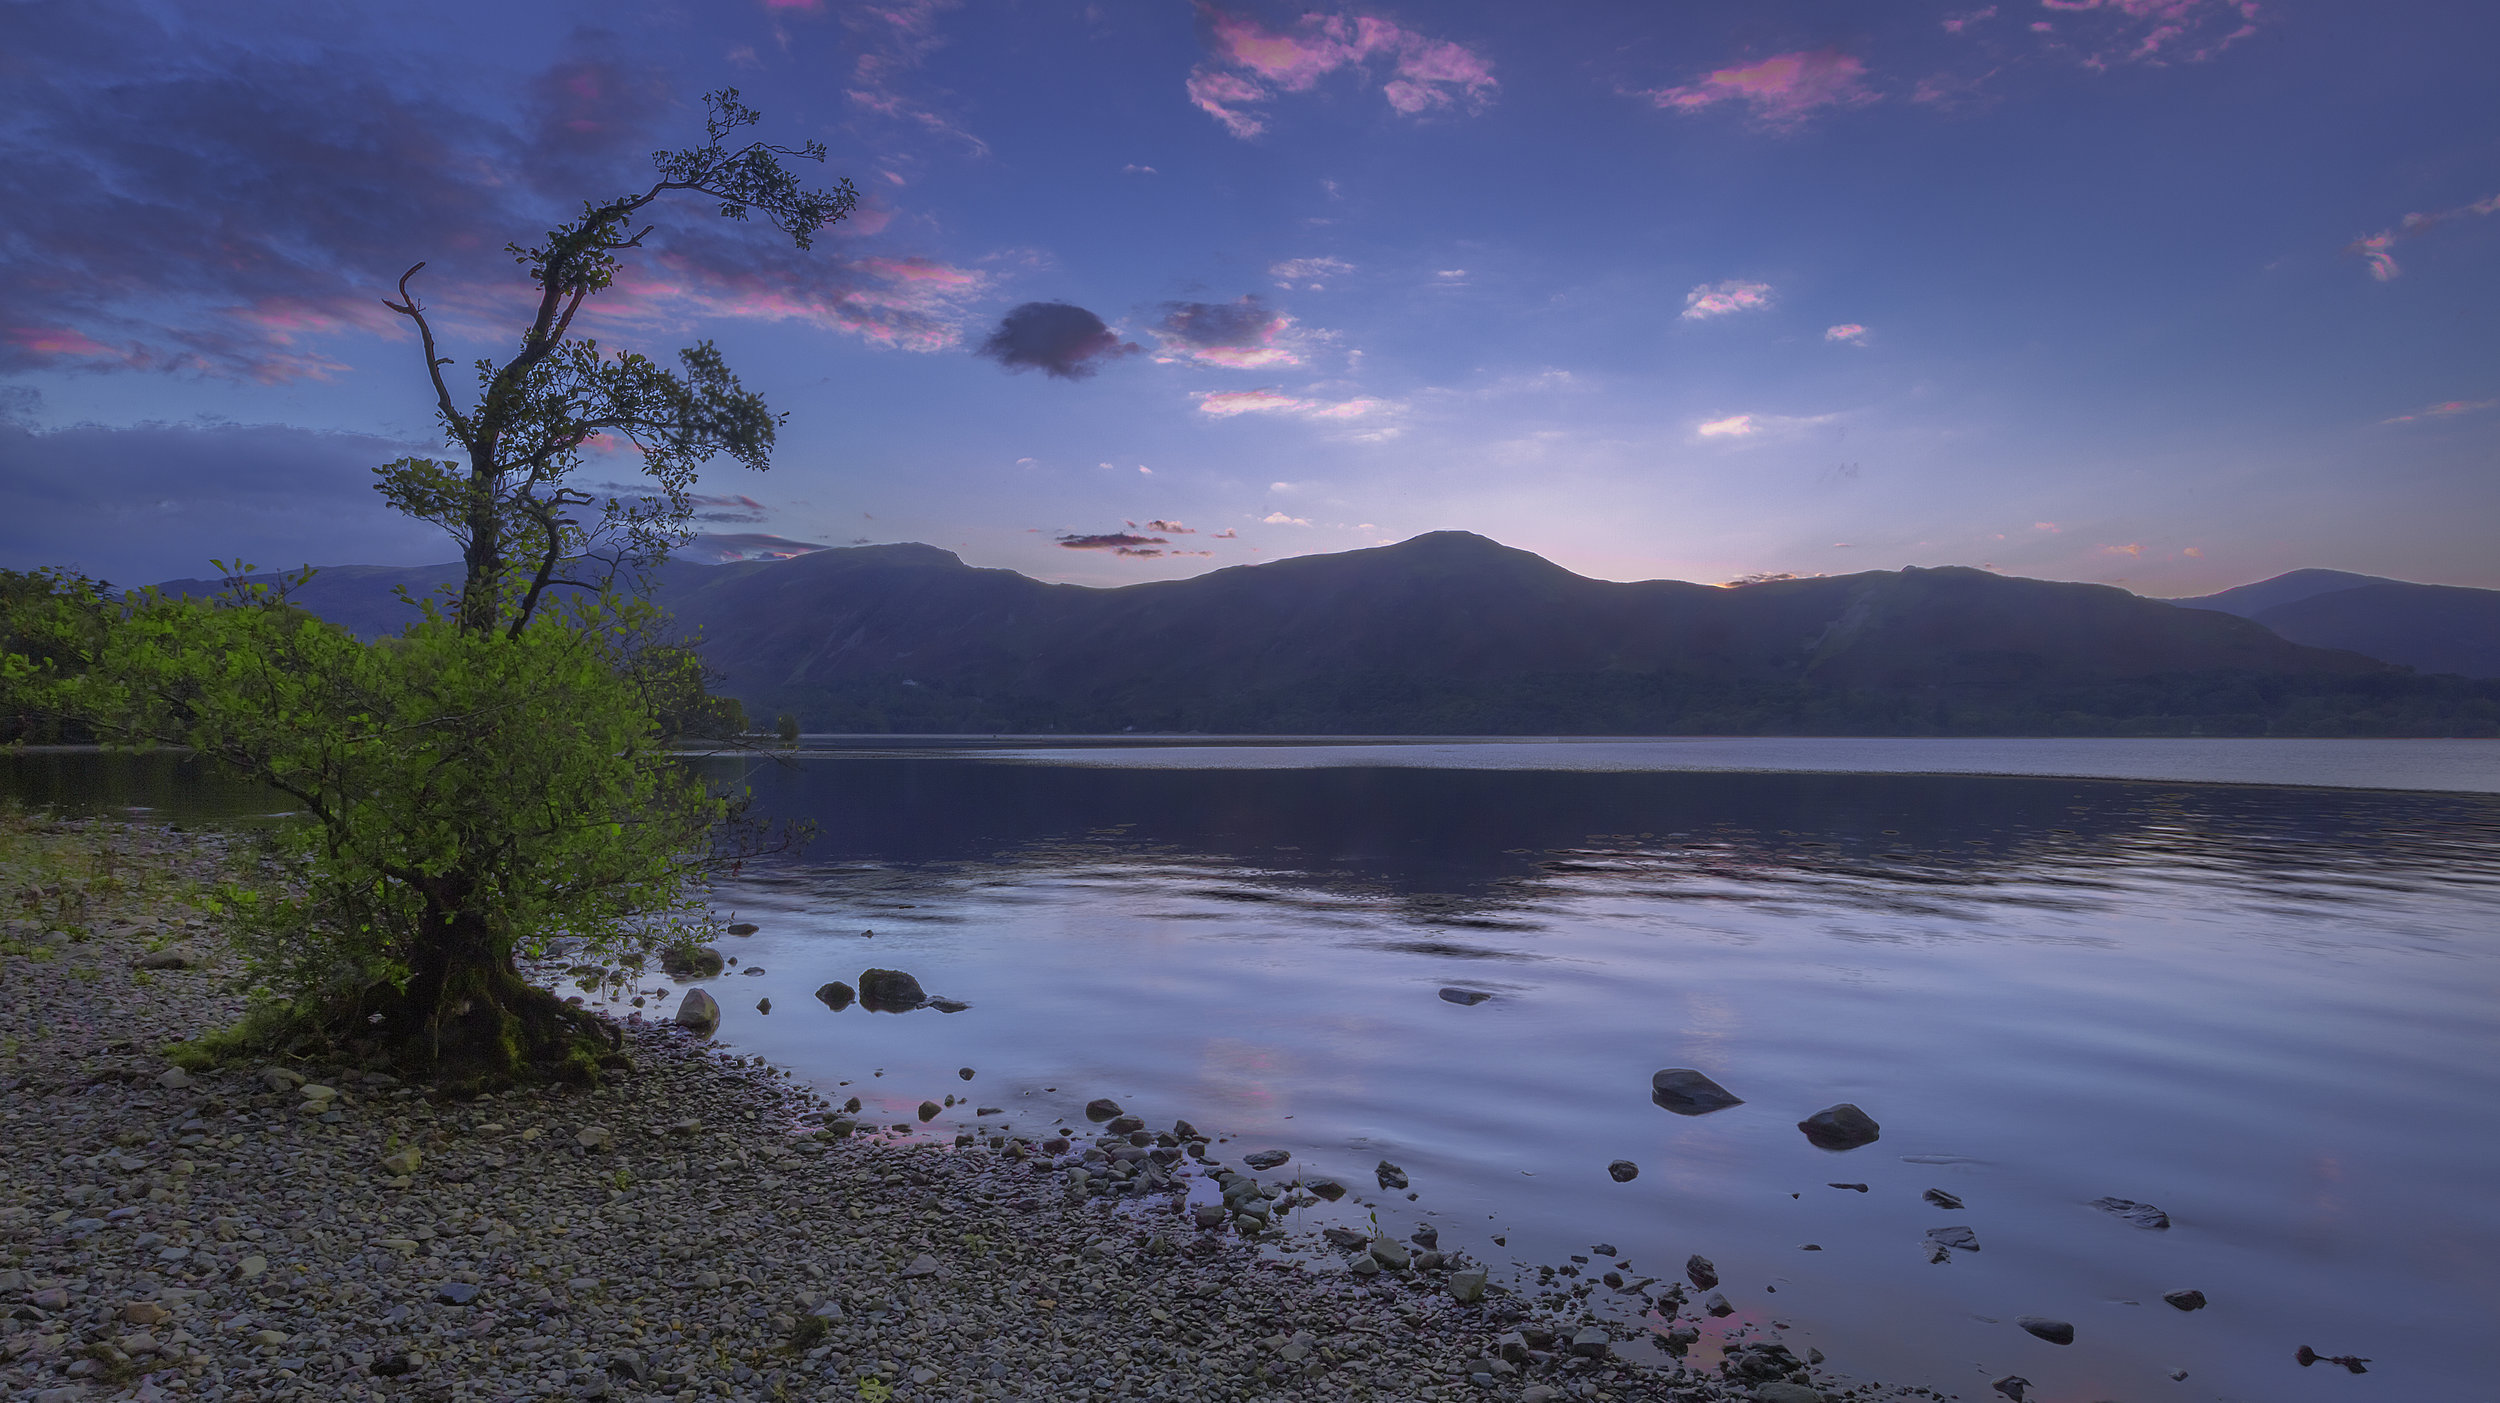 The Lakes - Derwent Water Sunset Sky.jpg